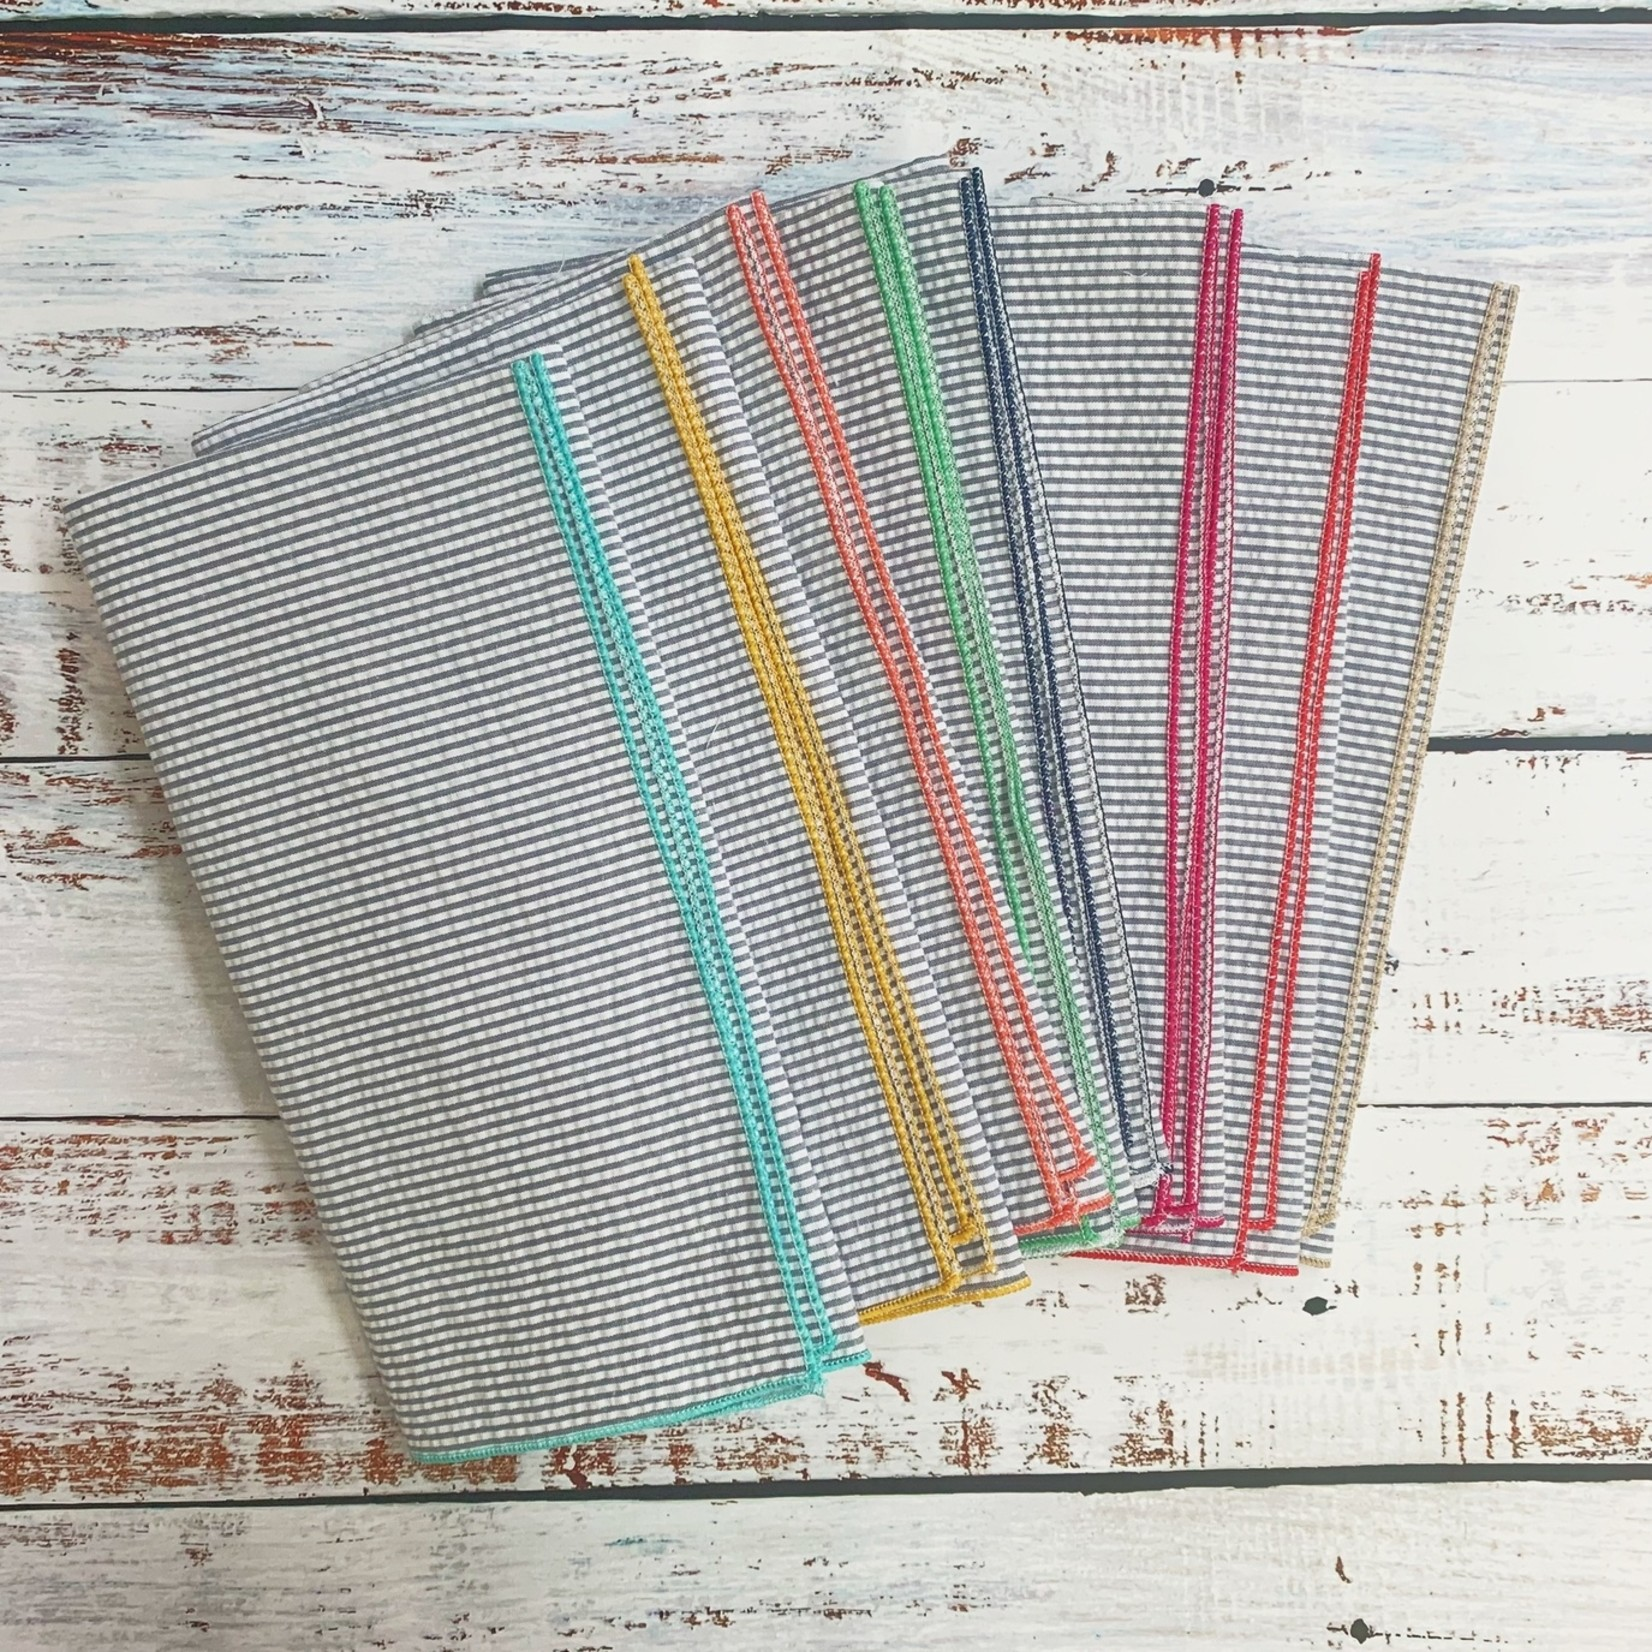 Dot and Army Seersucker Dinner Napkins - Grey w/ Colorful Edges - Set of 8